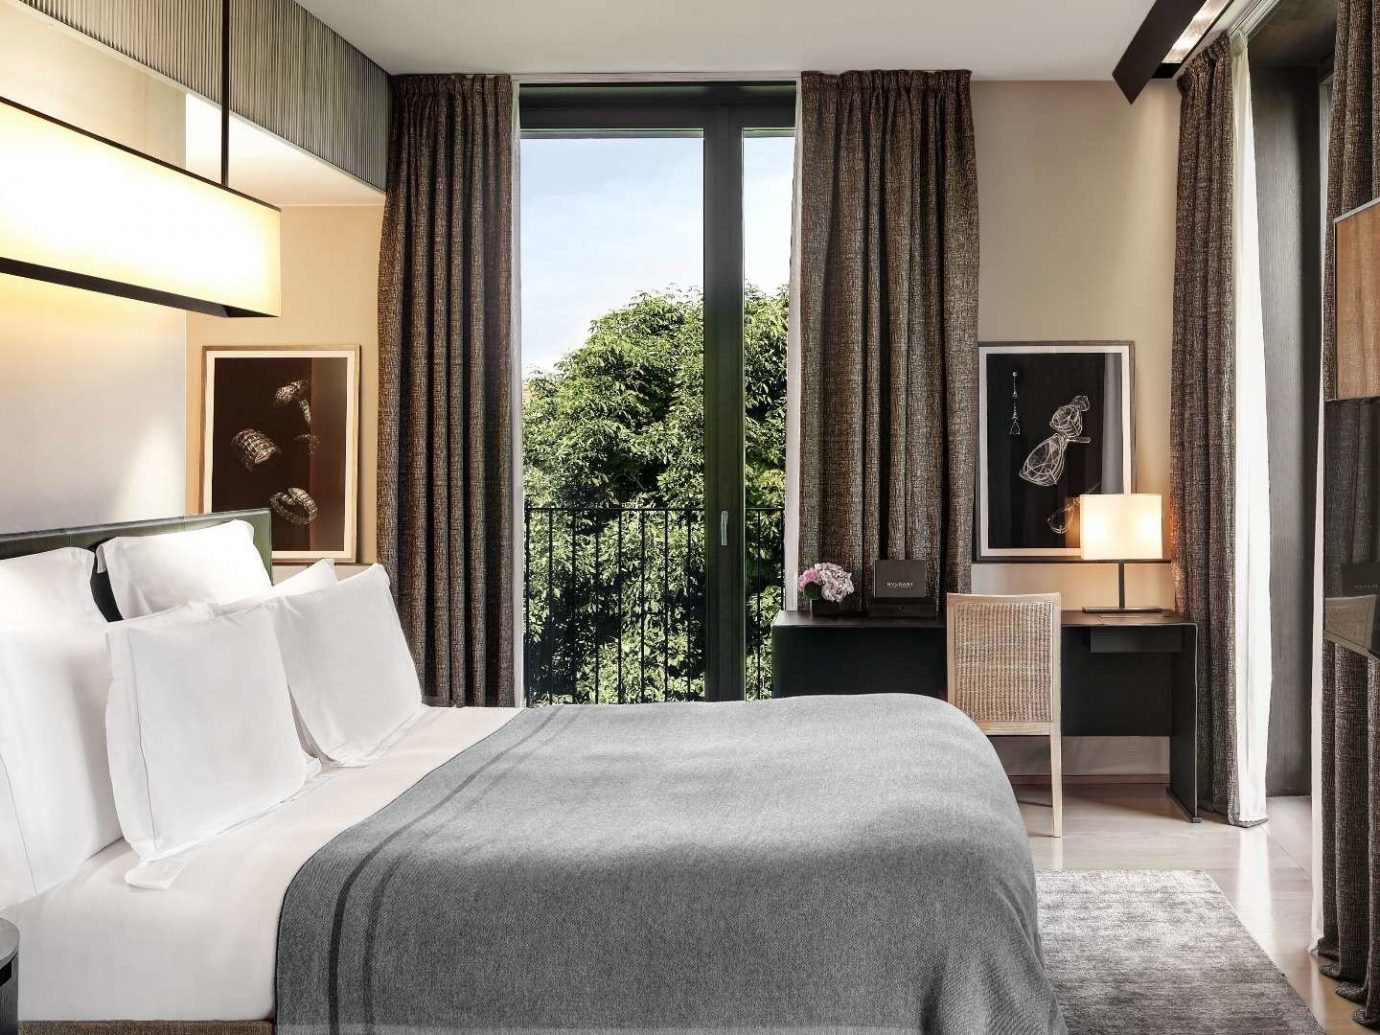 Hotel Design Milan The Best Hotels In Milan Were Made For Design Lovers Jetsetter